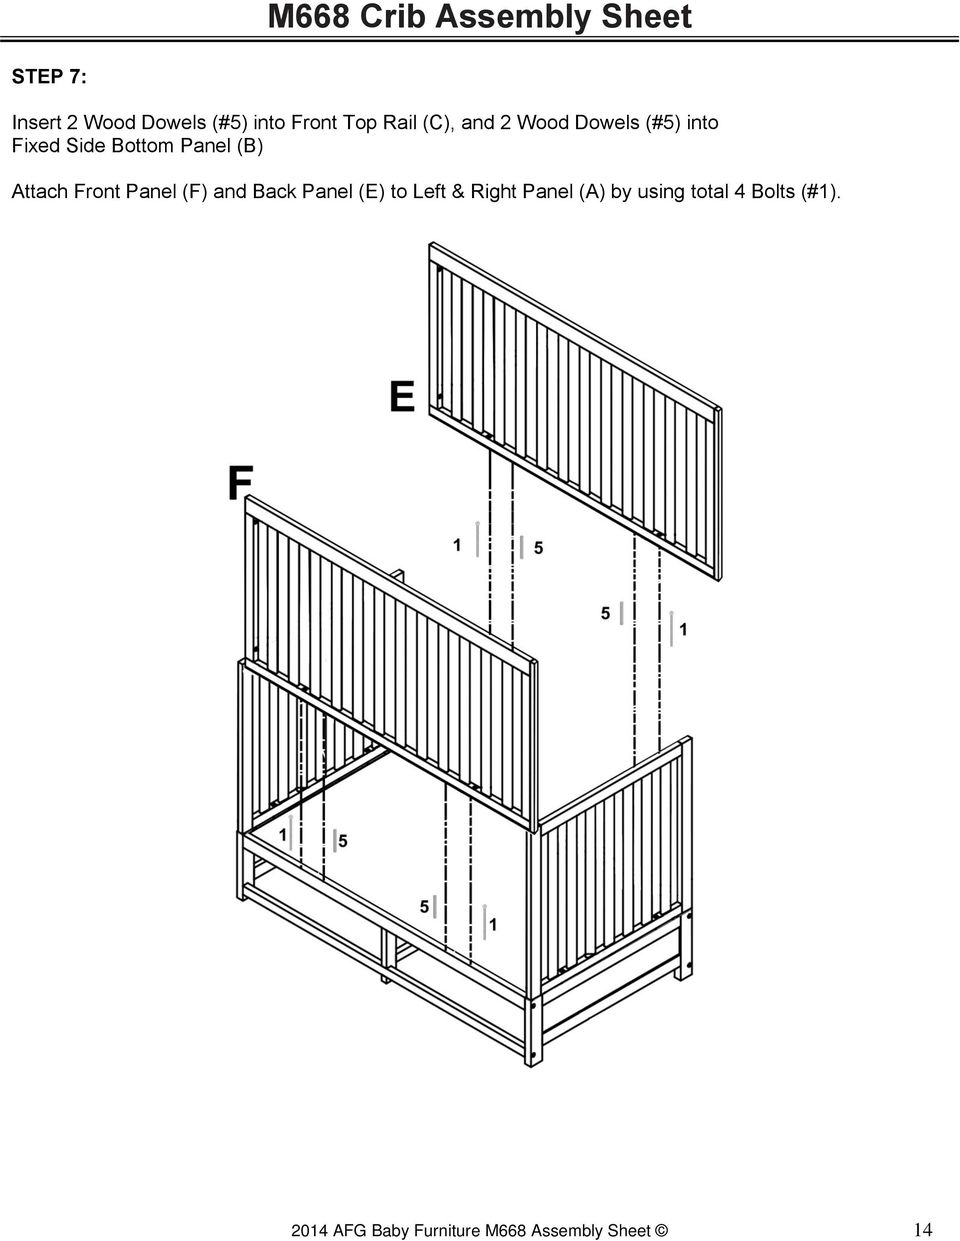 Attach Front Panel (F) and Back Panel (E) to Left & Right Panel (A) by